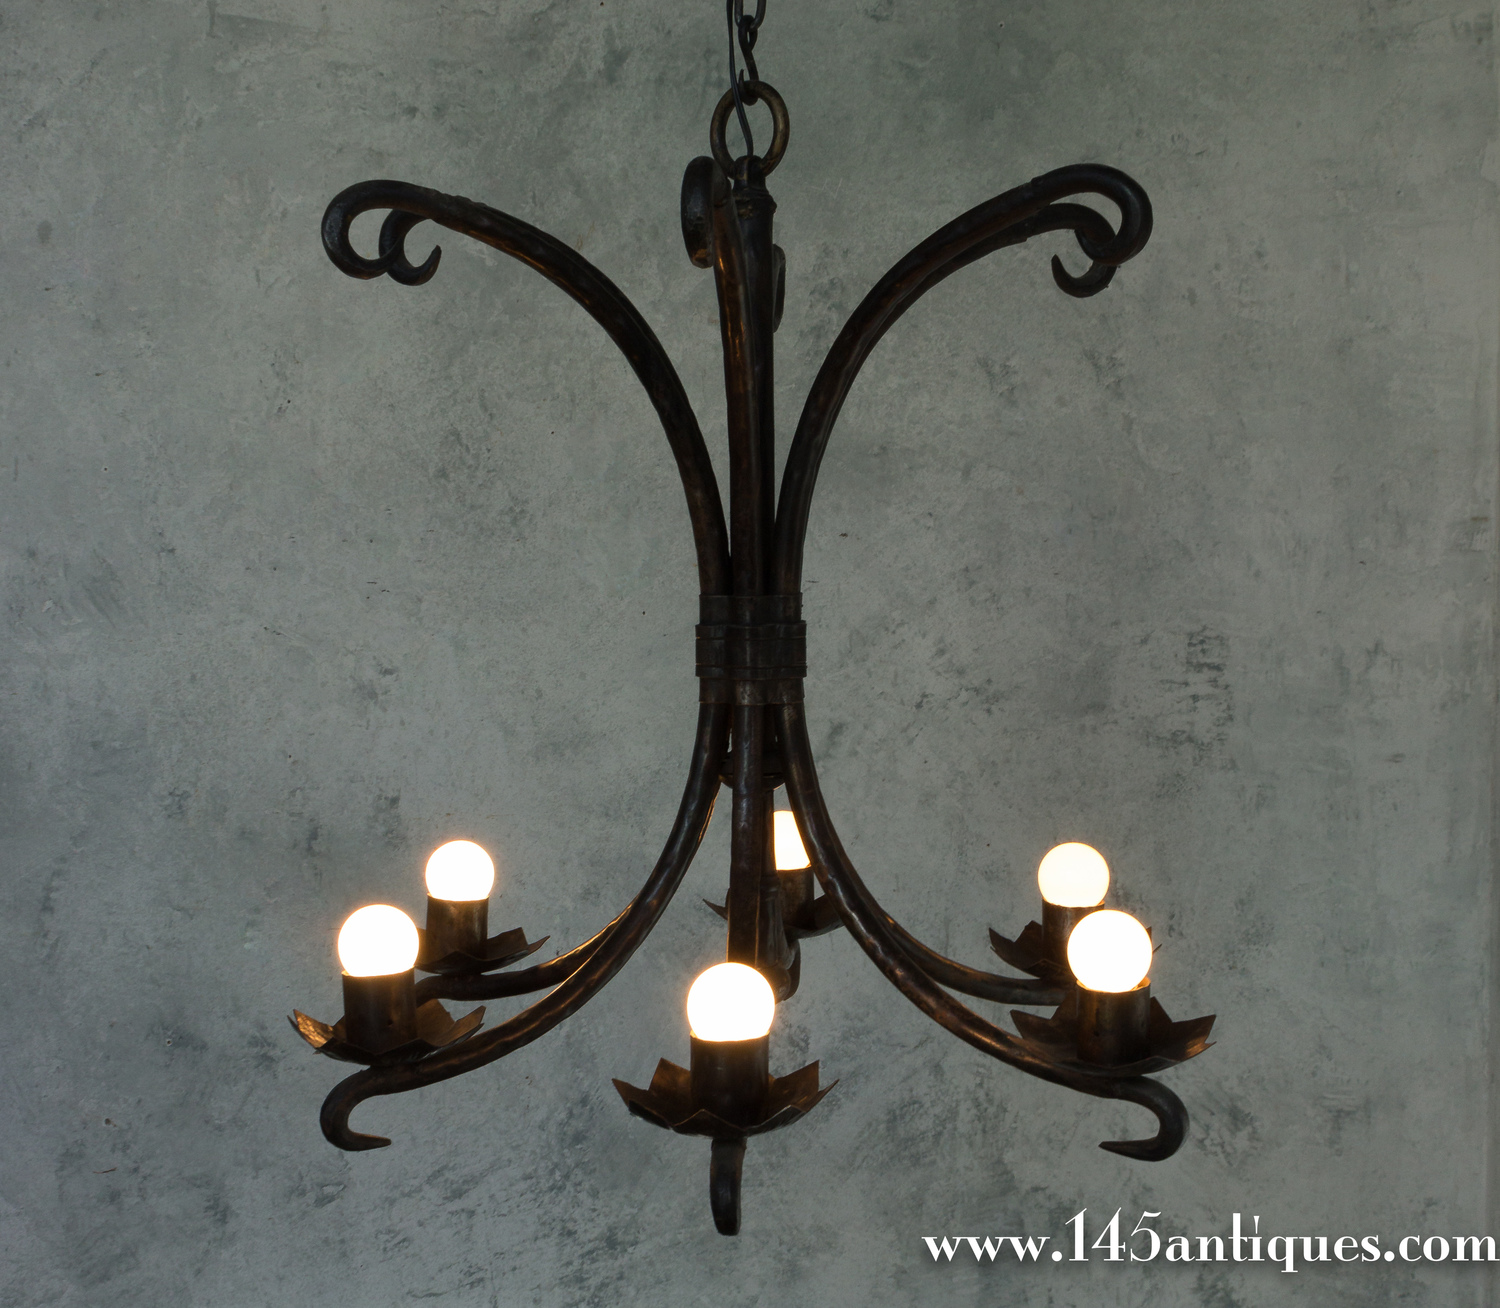 Spanish Wrought Iron Chandelier — 145 Antiques